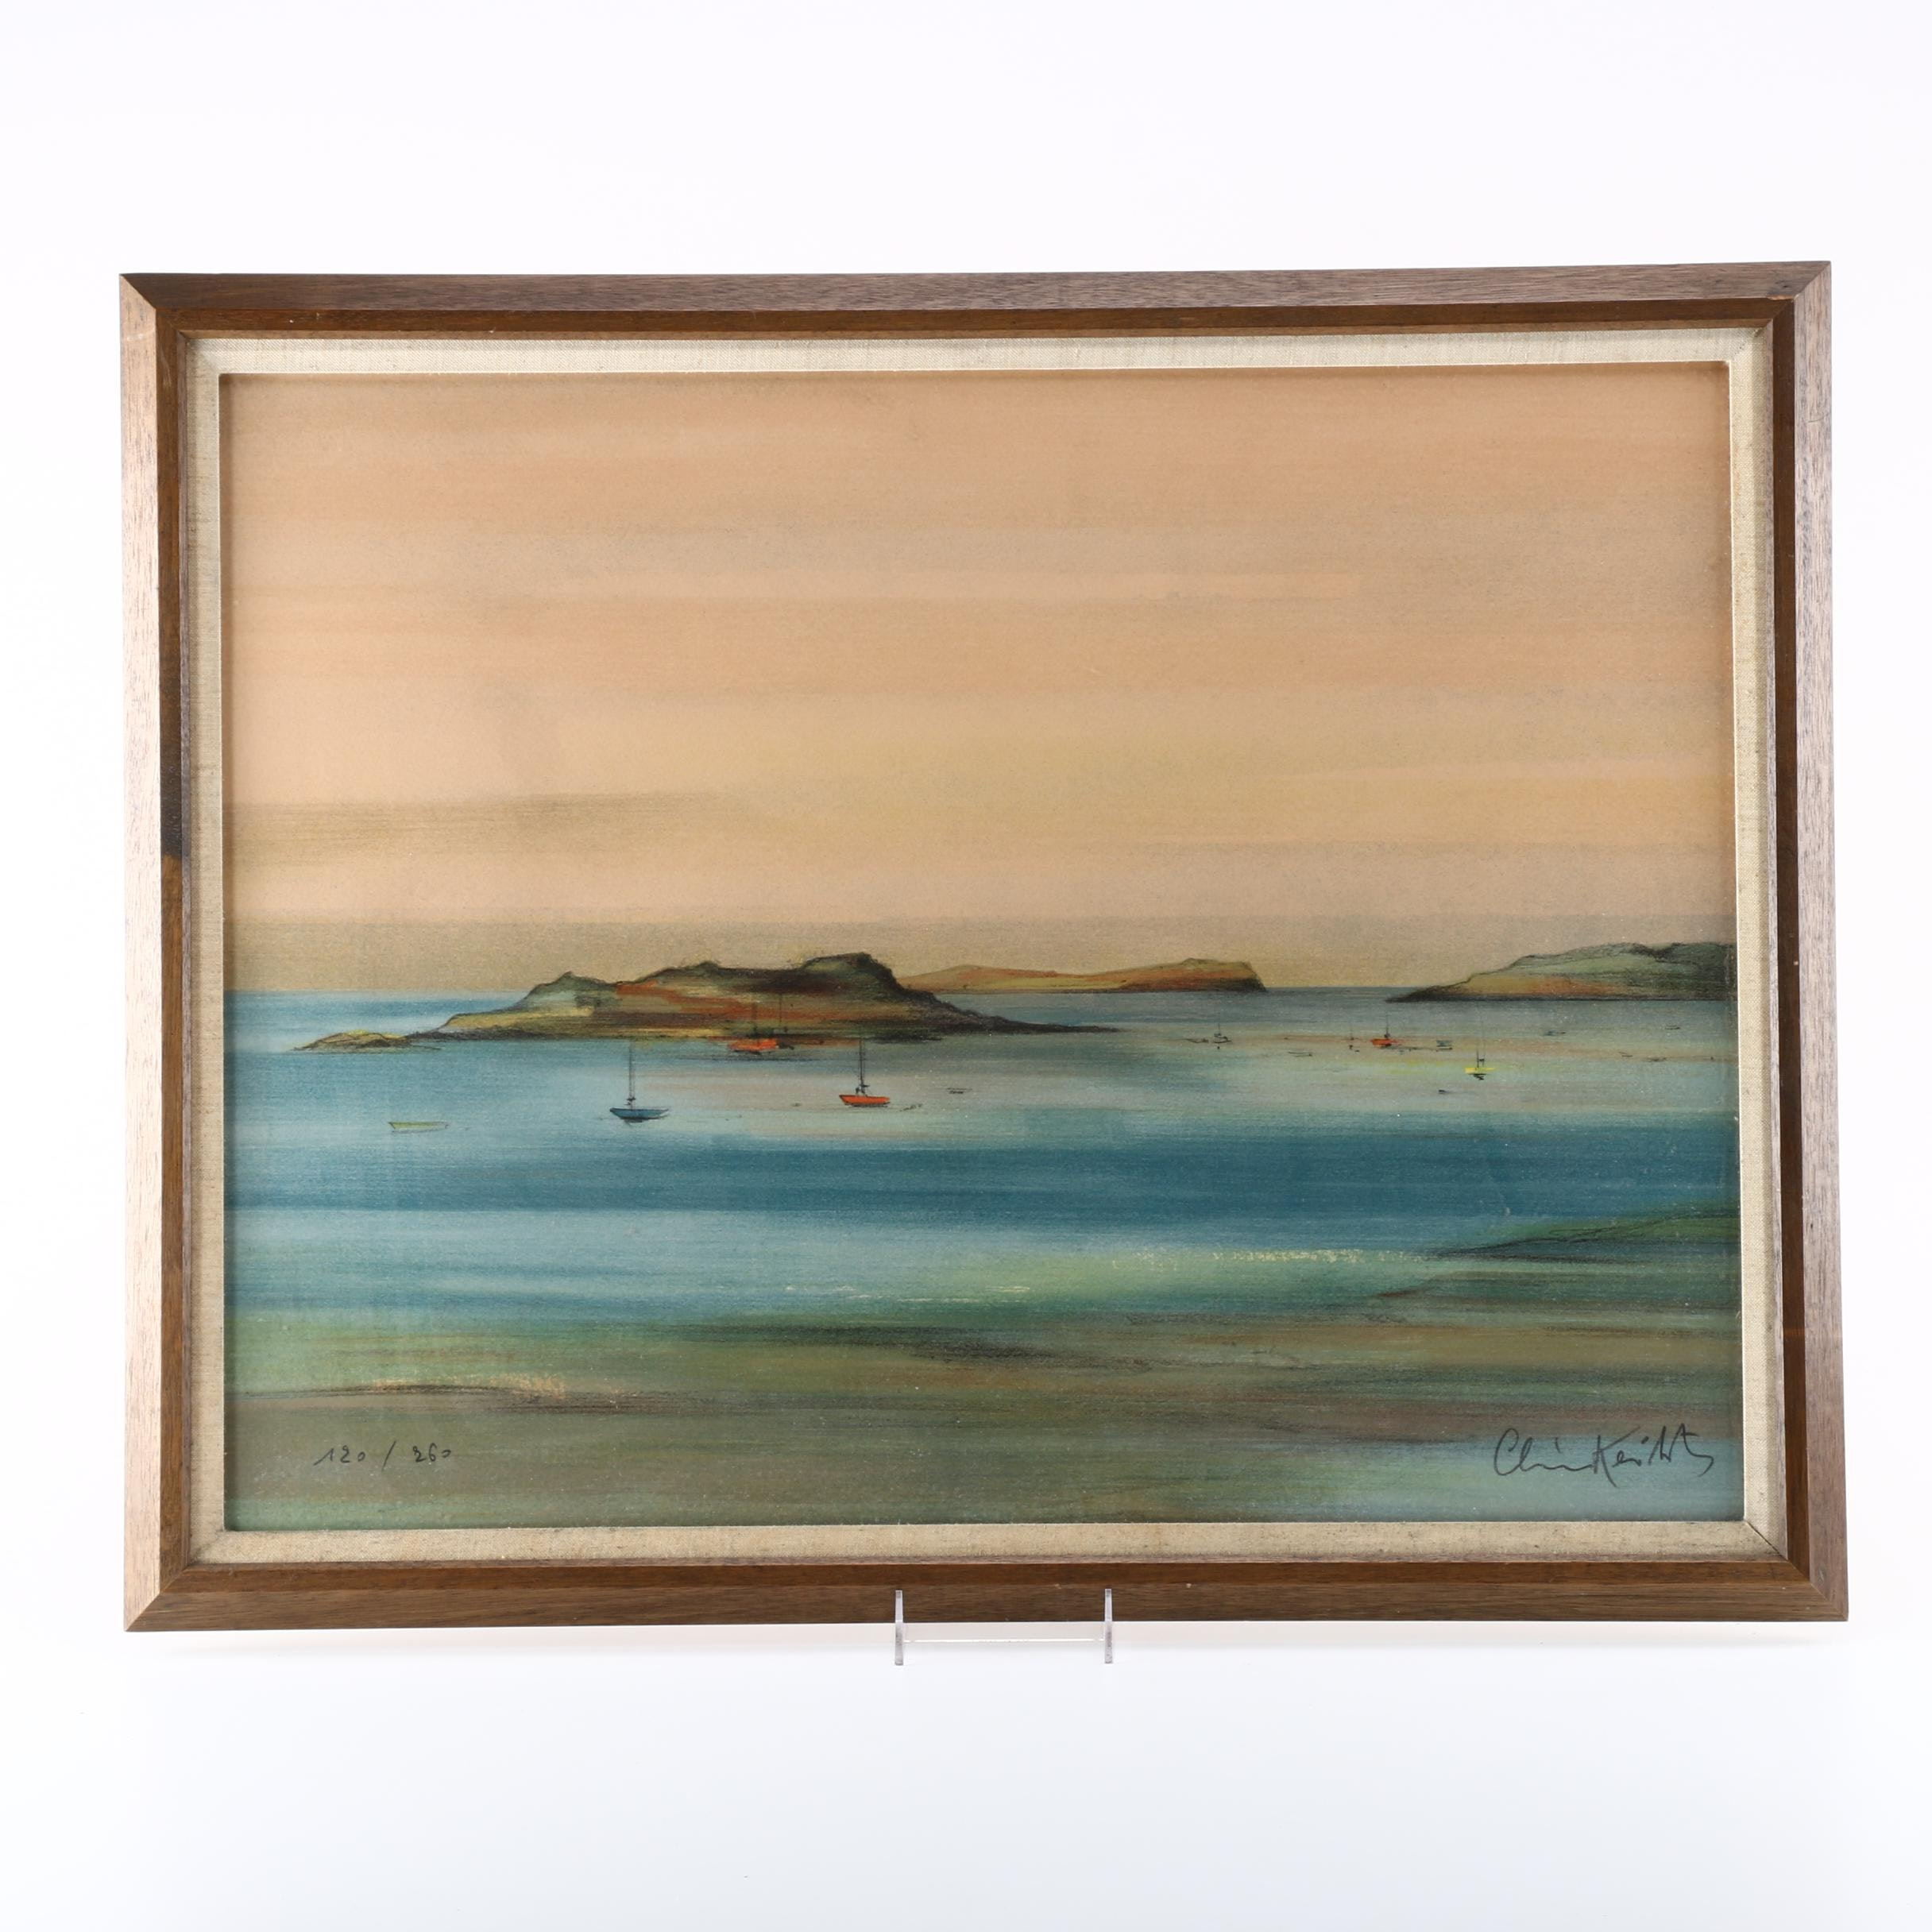 Framed Limited Edition Lithograph of Boats in Bay